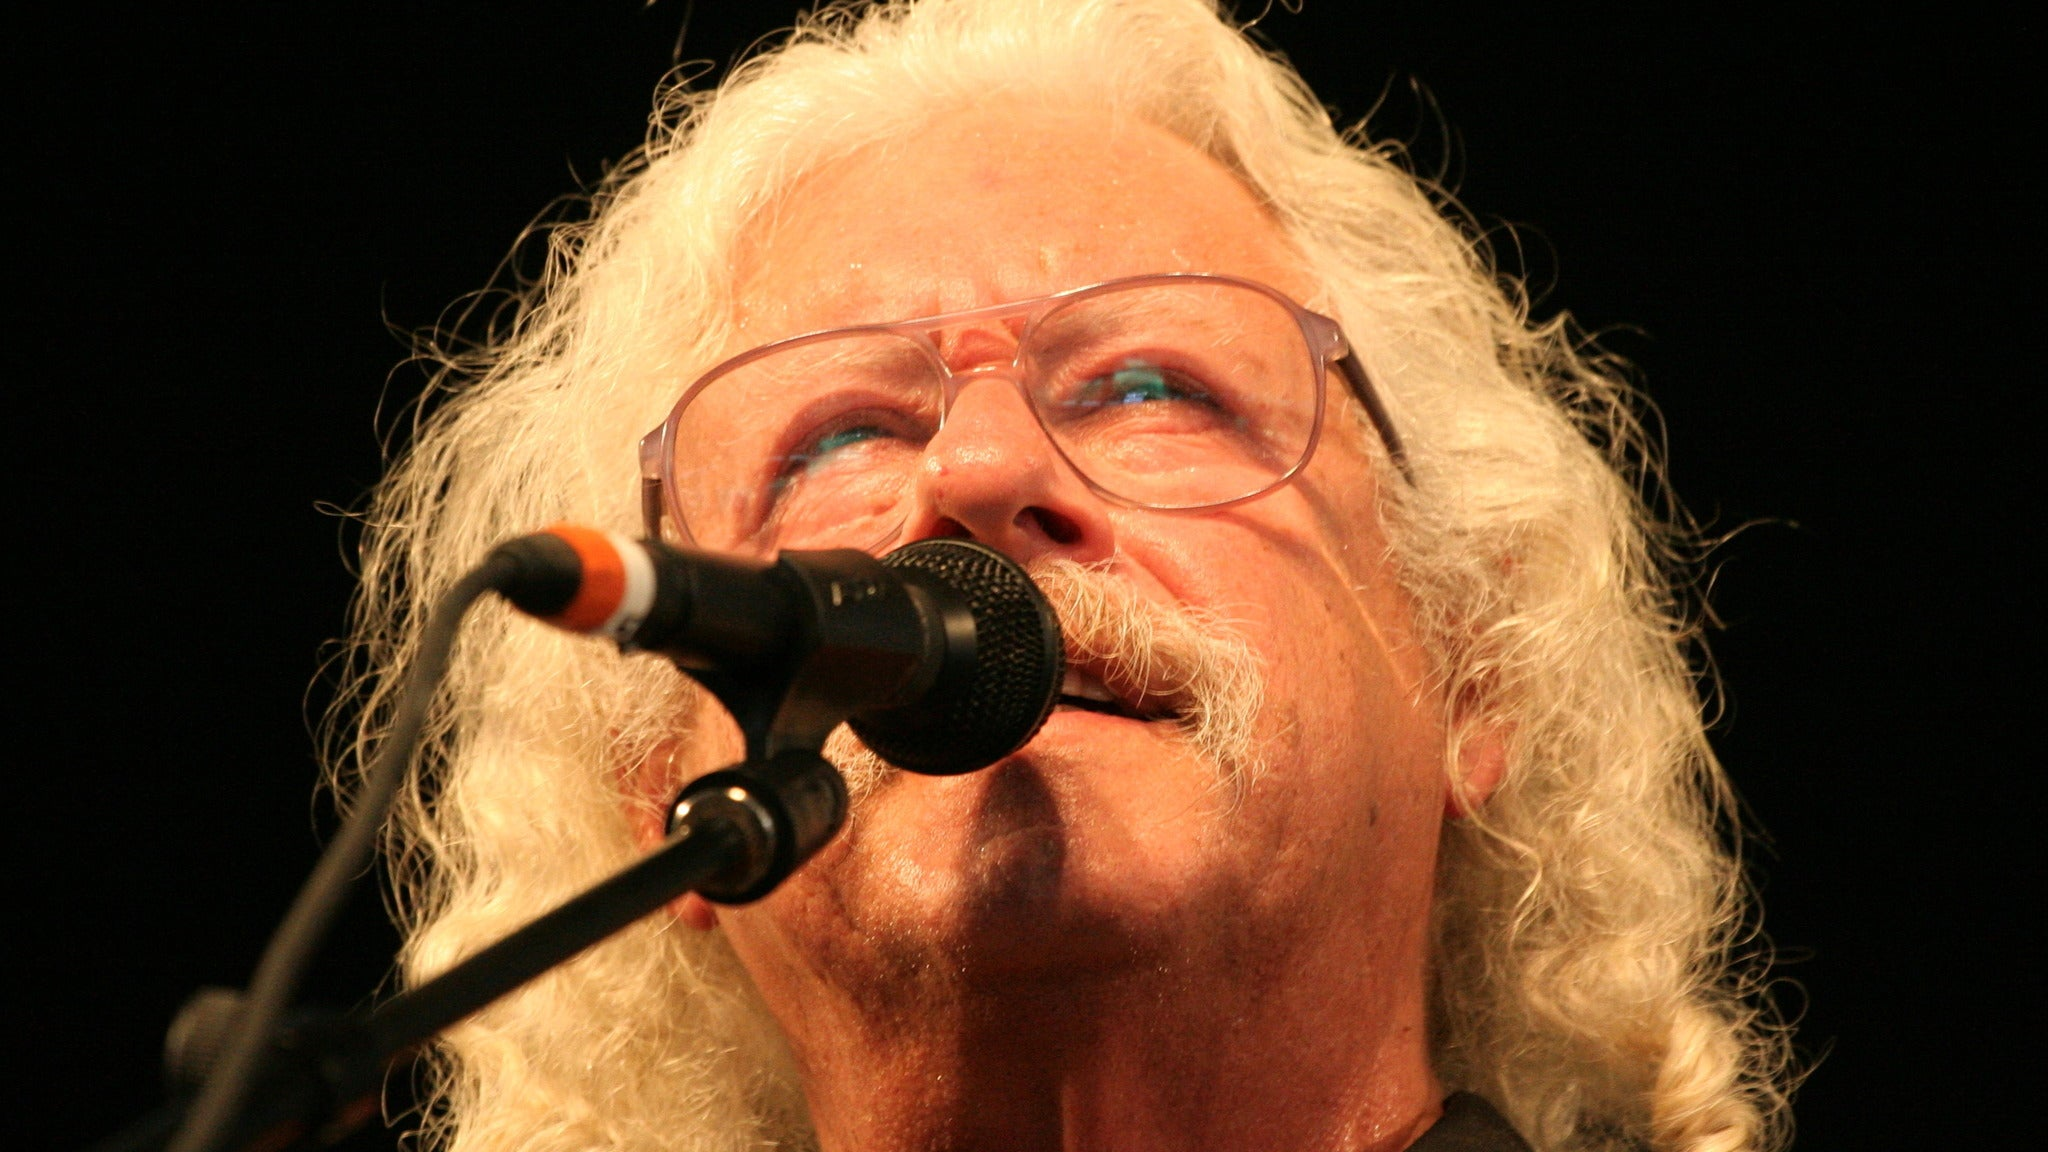 Arlo Guthrie at Community Arts Center - PA